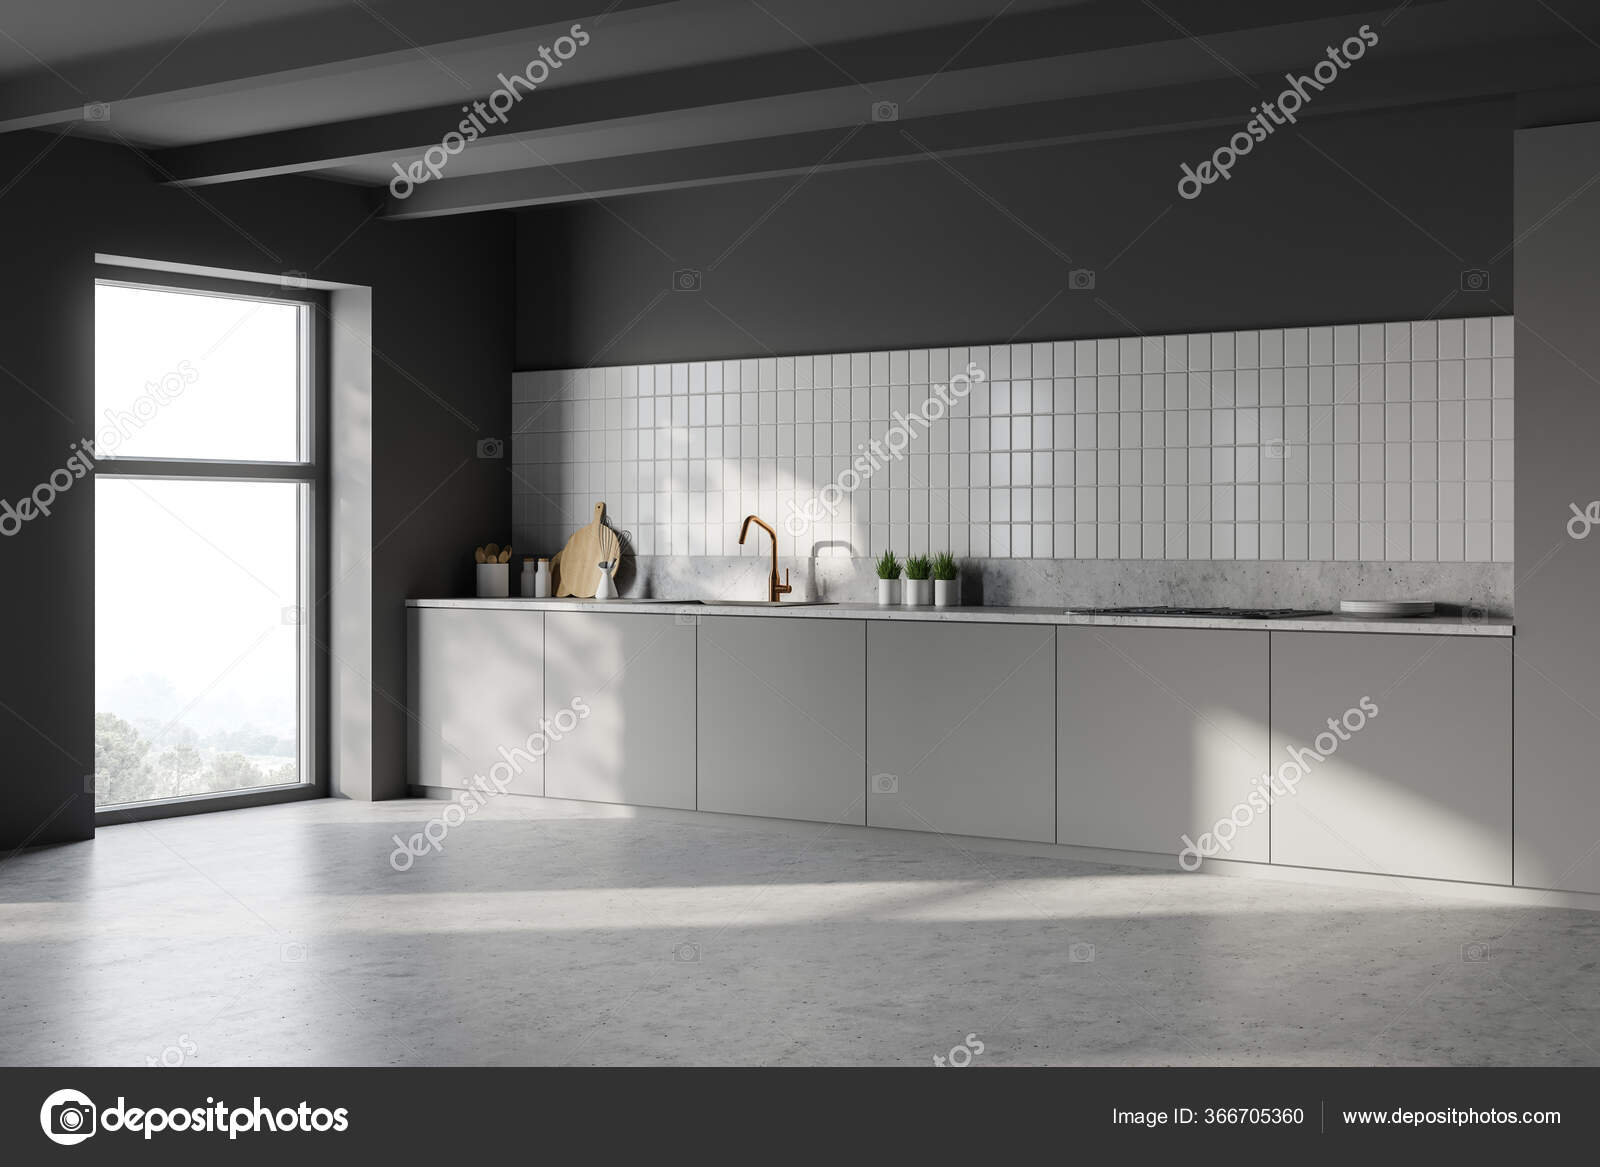 Dan Küche Arbeitsplatte Basin Corner Stylish Minimalistic Kitchen White Dark Grey Walls Concrete Floor ⬇ Stock Photo, Image By © Denisismagilov #366705360